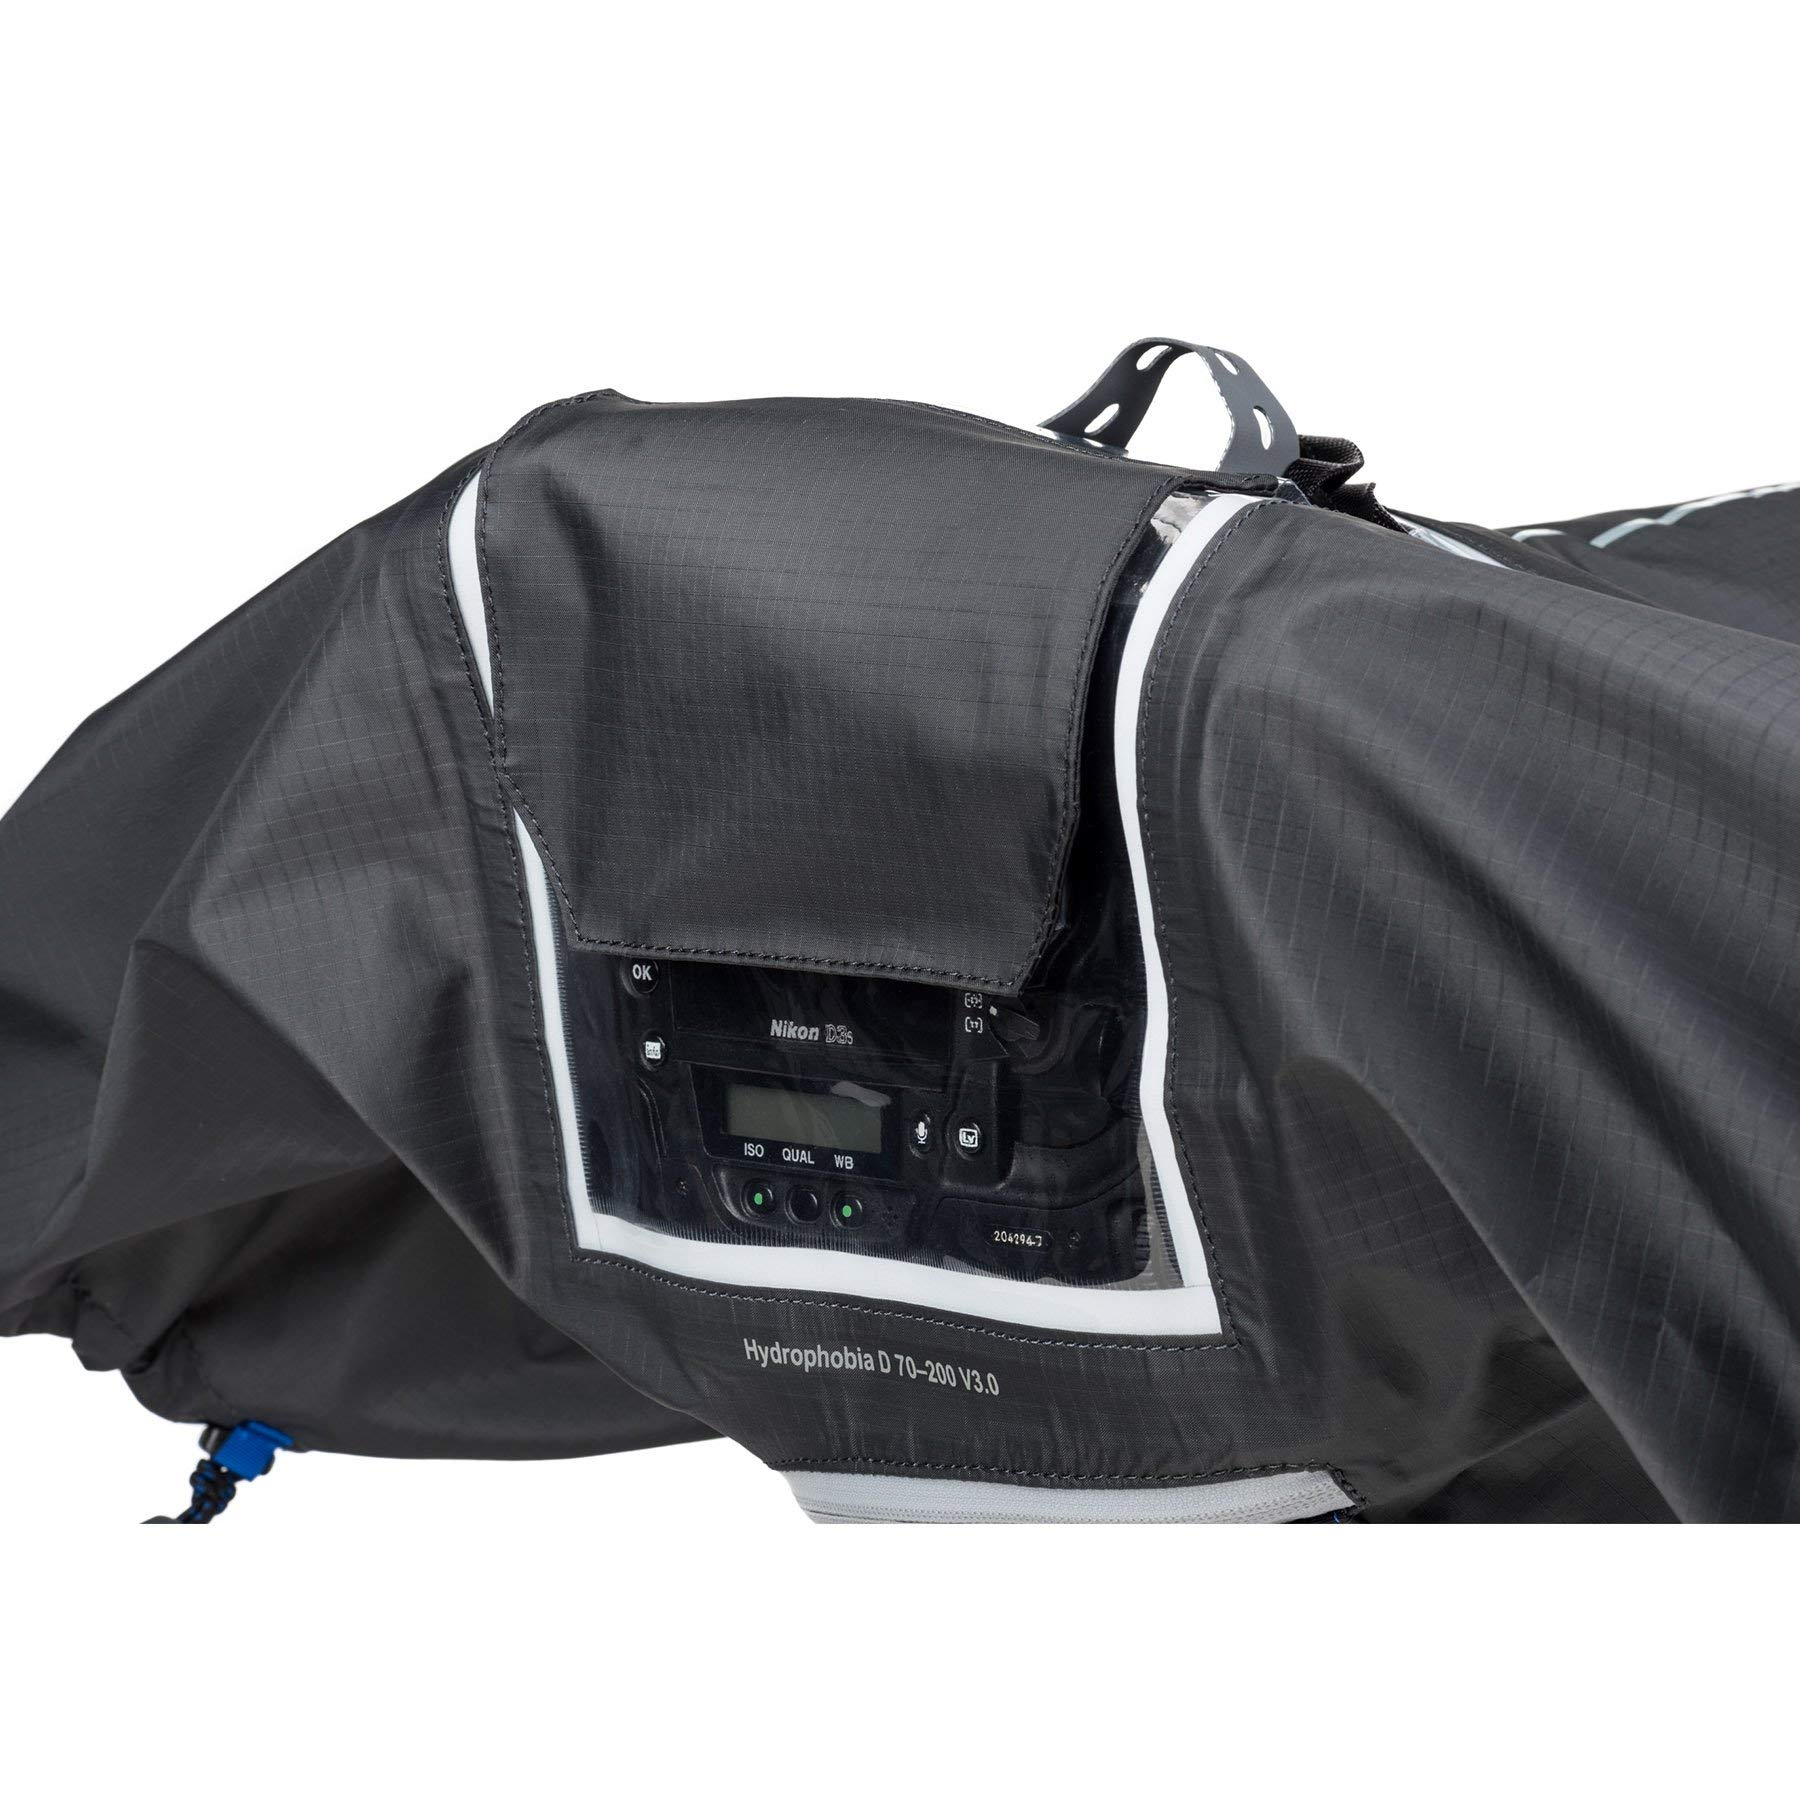 Think Tank Photo Hydrophobia D 70-200 V3 Camera Rain Cover for DSLR Camera with 70-200mm f/2.8 Lens by Think Tank (Image #5)